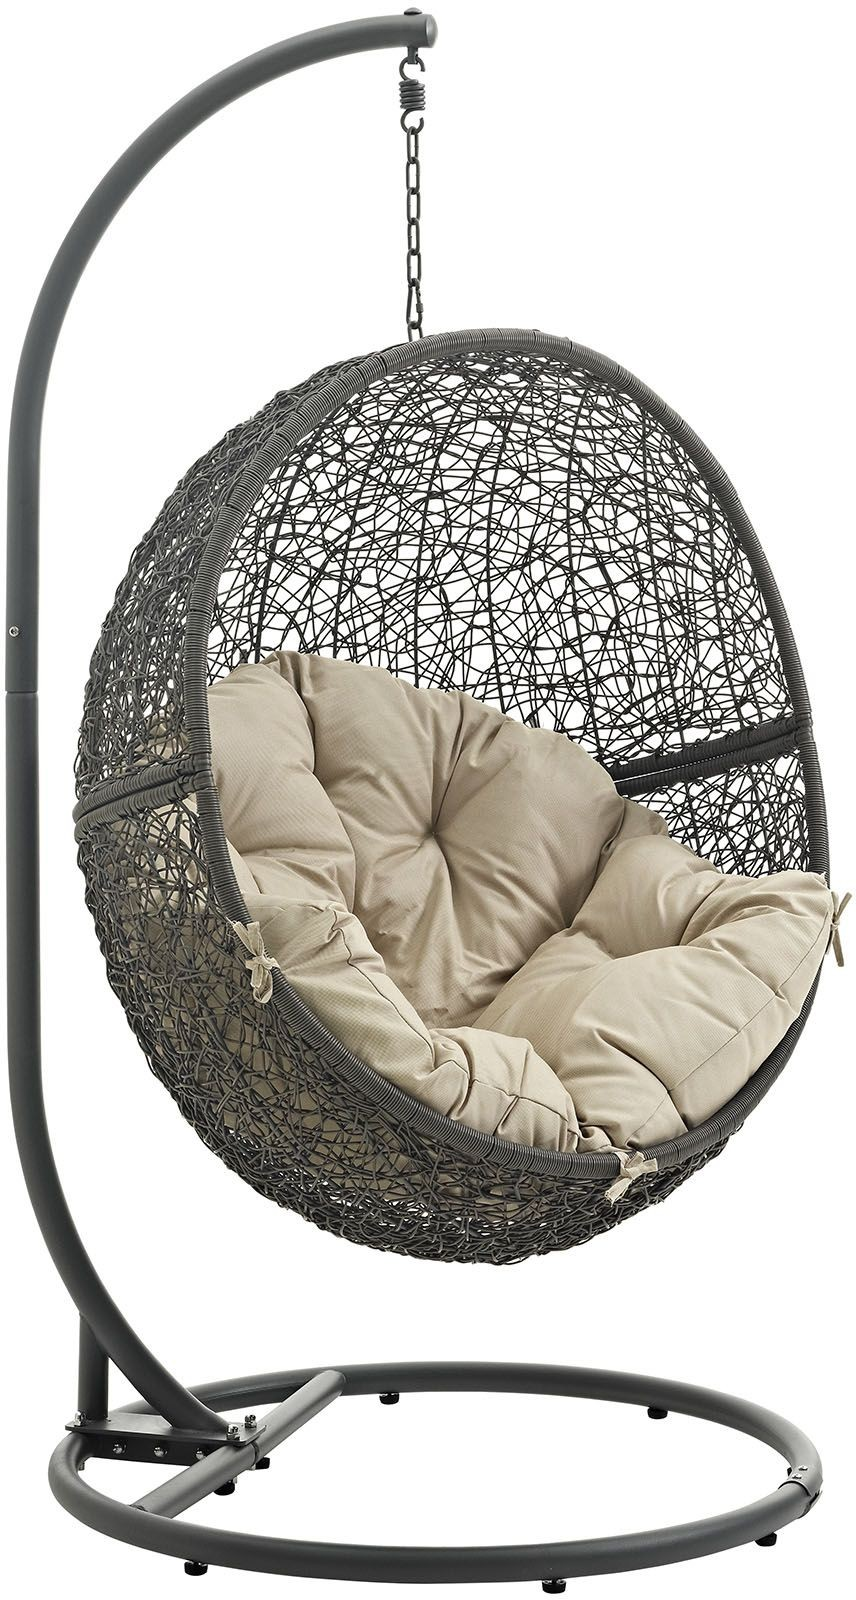 Hide Gray Beige Outdoor Patio Swing Chair With Stand from Renegade : Coleman Furniture